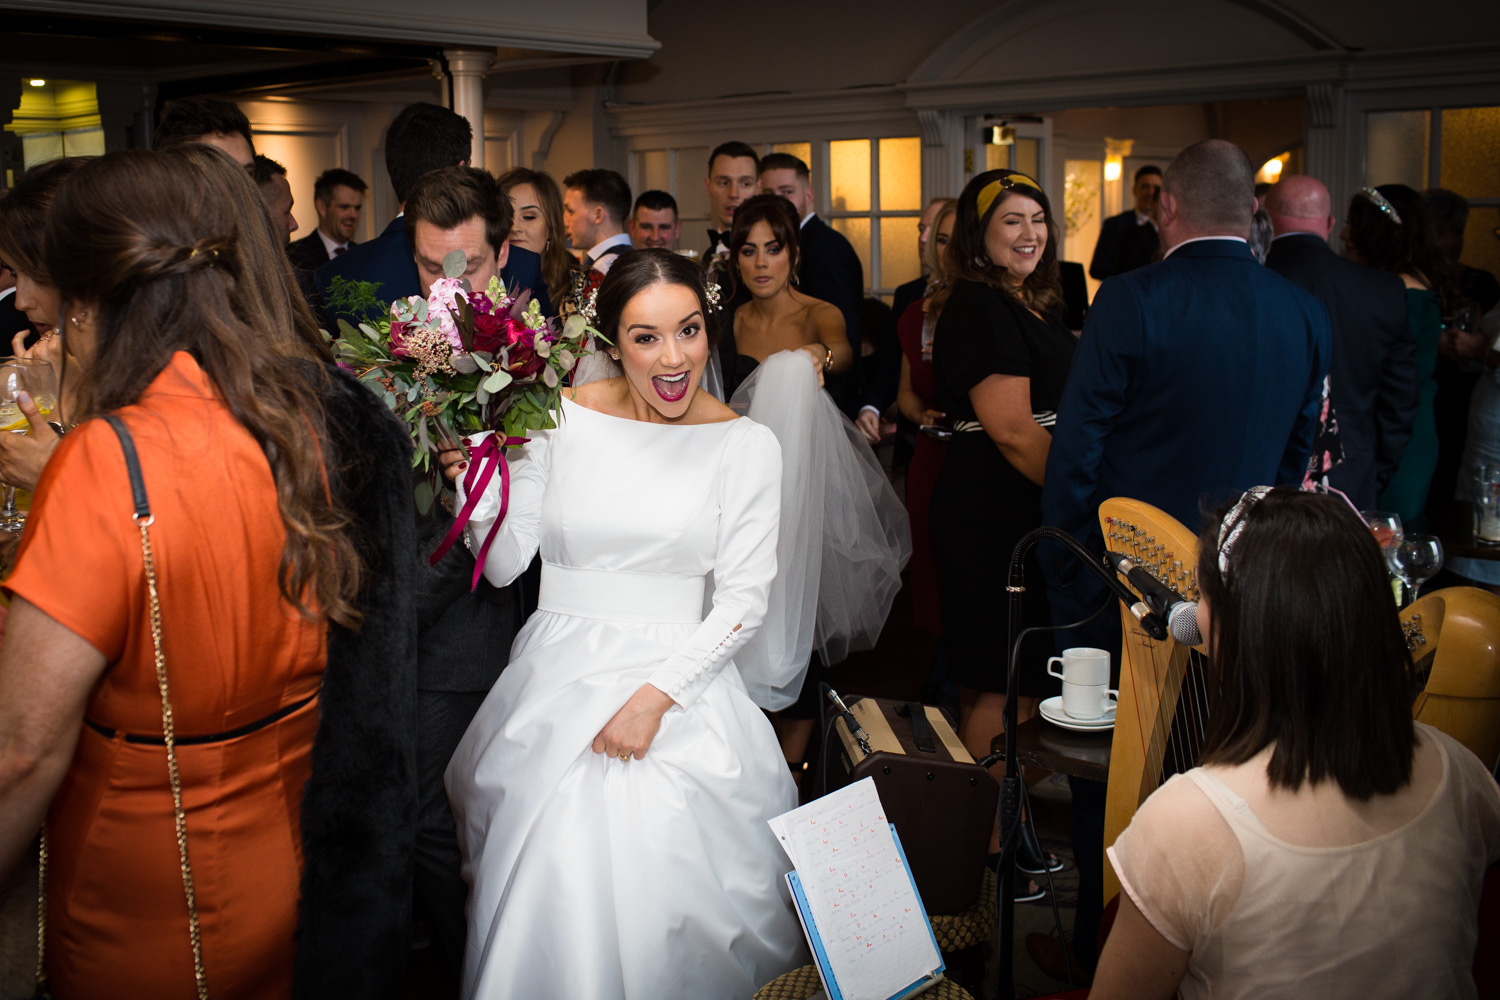 Mark_Barnes_Northern_Ireland_wedding_photographer_Innishowen_Gateway_Donegal_Wedding_photography_Donegal_wedding_photographer-53.jpg